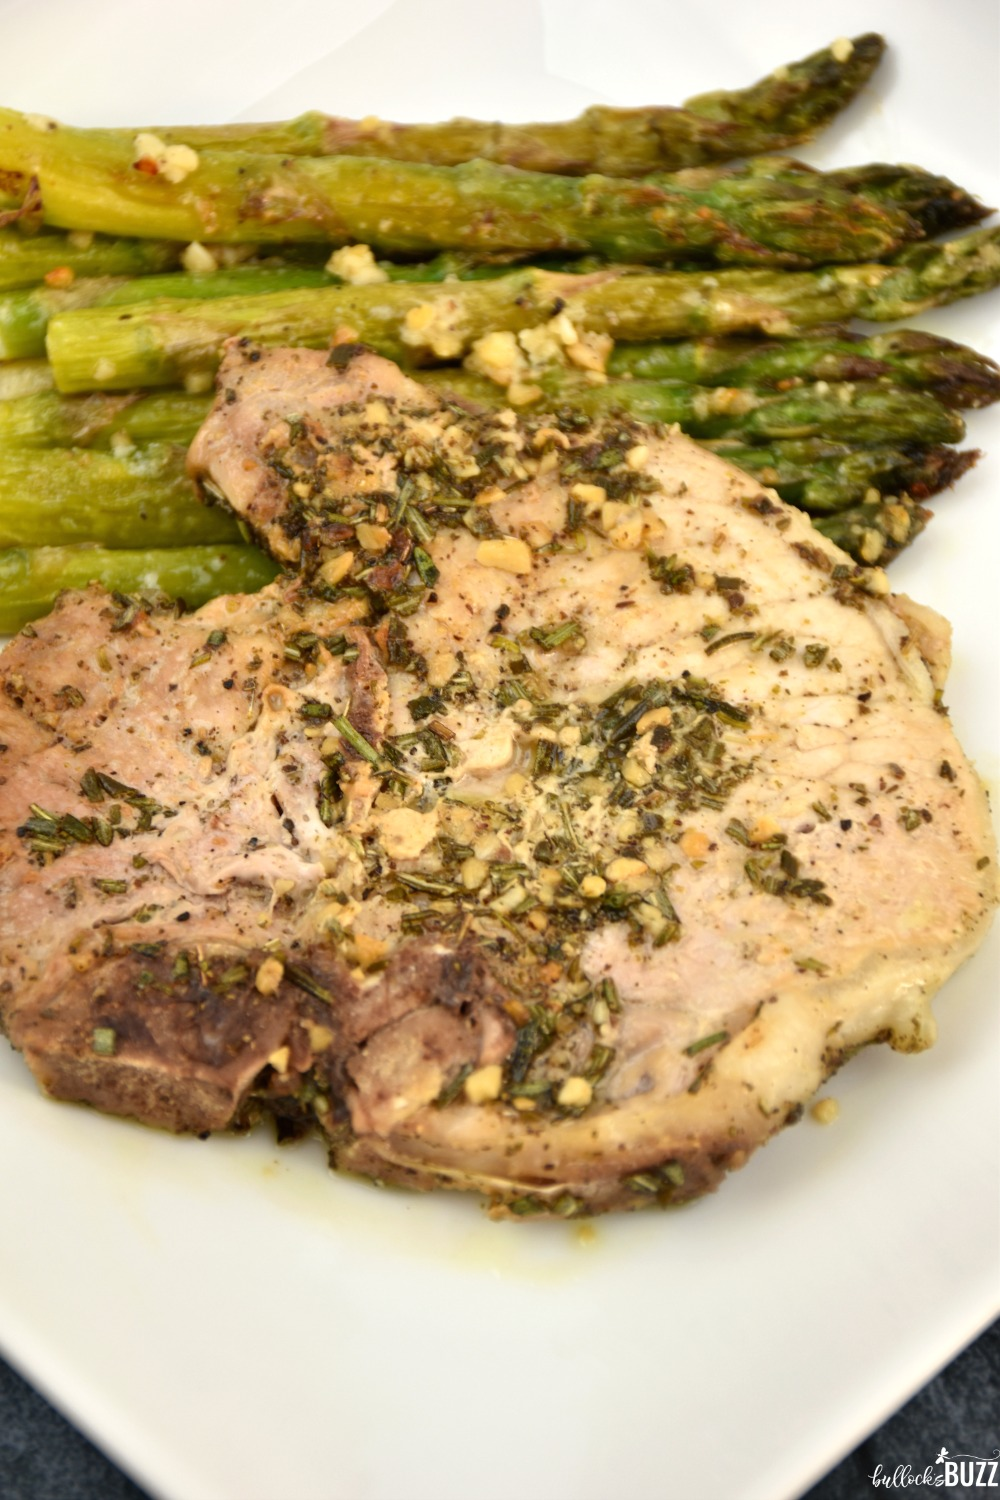 It really doesn't get any easier than this Rosemary Sage Pork Chop dinner recipe. Simply sauté the herbs in olive oil. Add in the pork chops. And cook until they're ready. That's it. You're done!